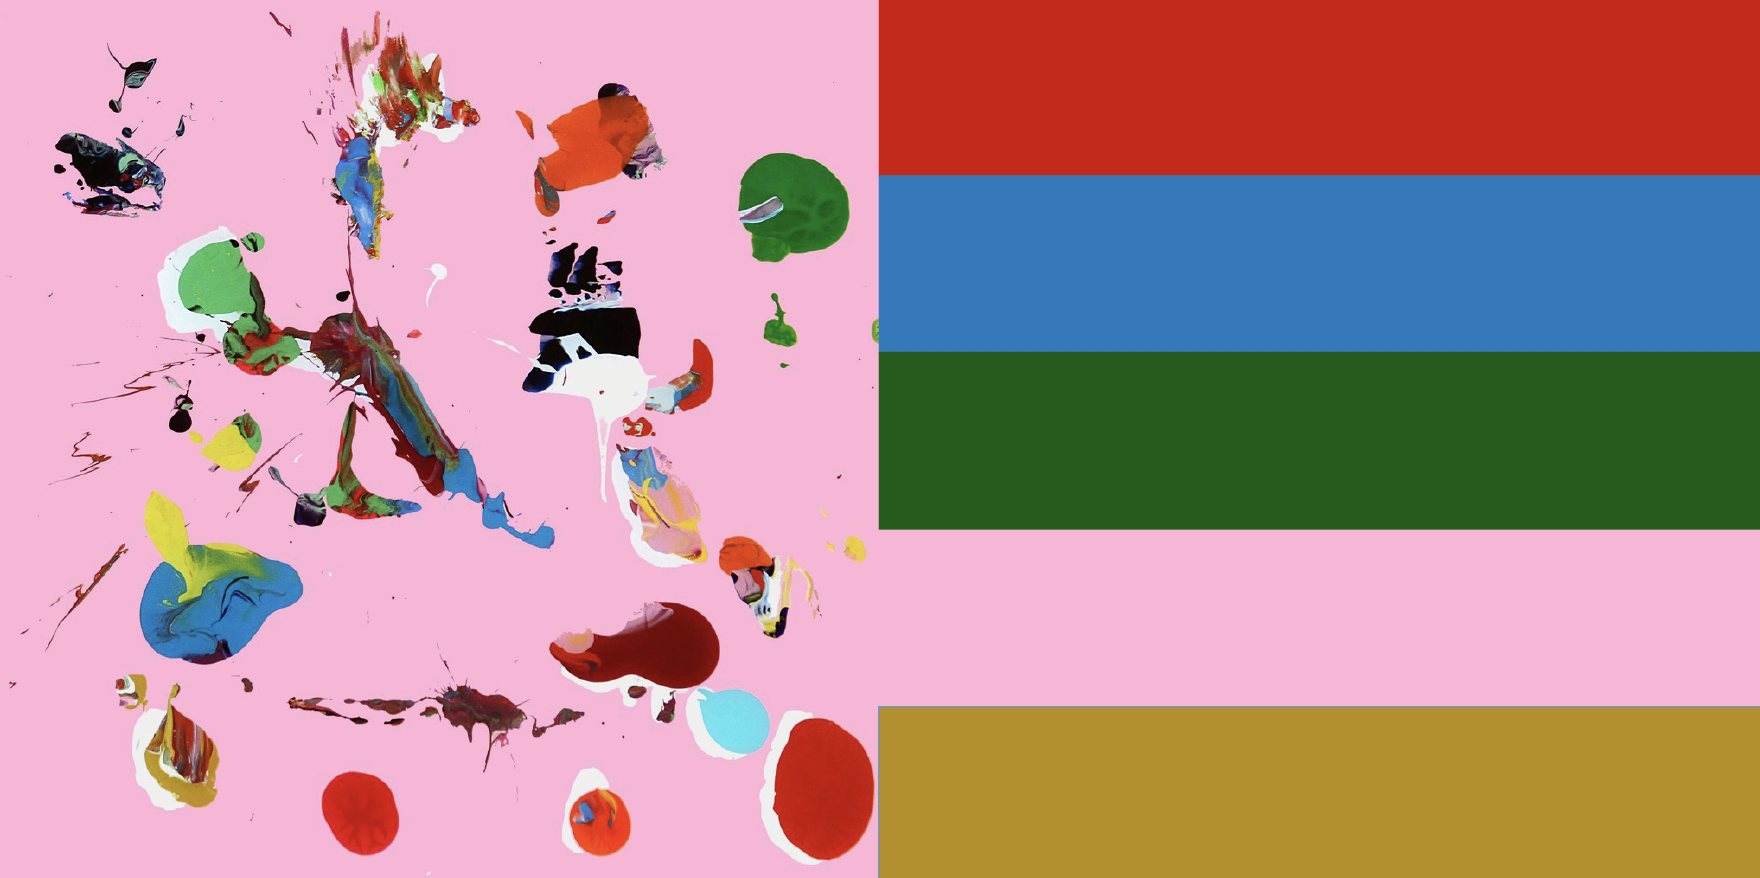 ATLAS (pink) by artist Santiago Picatoste inspired the colour palette